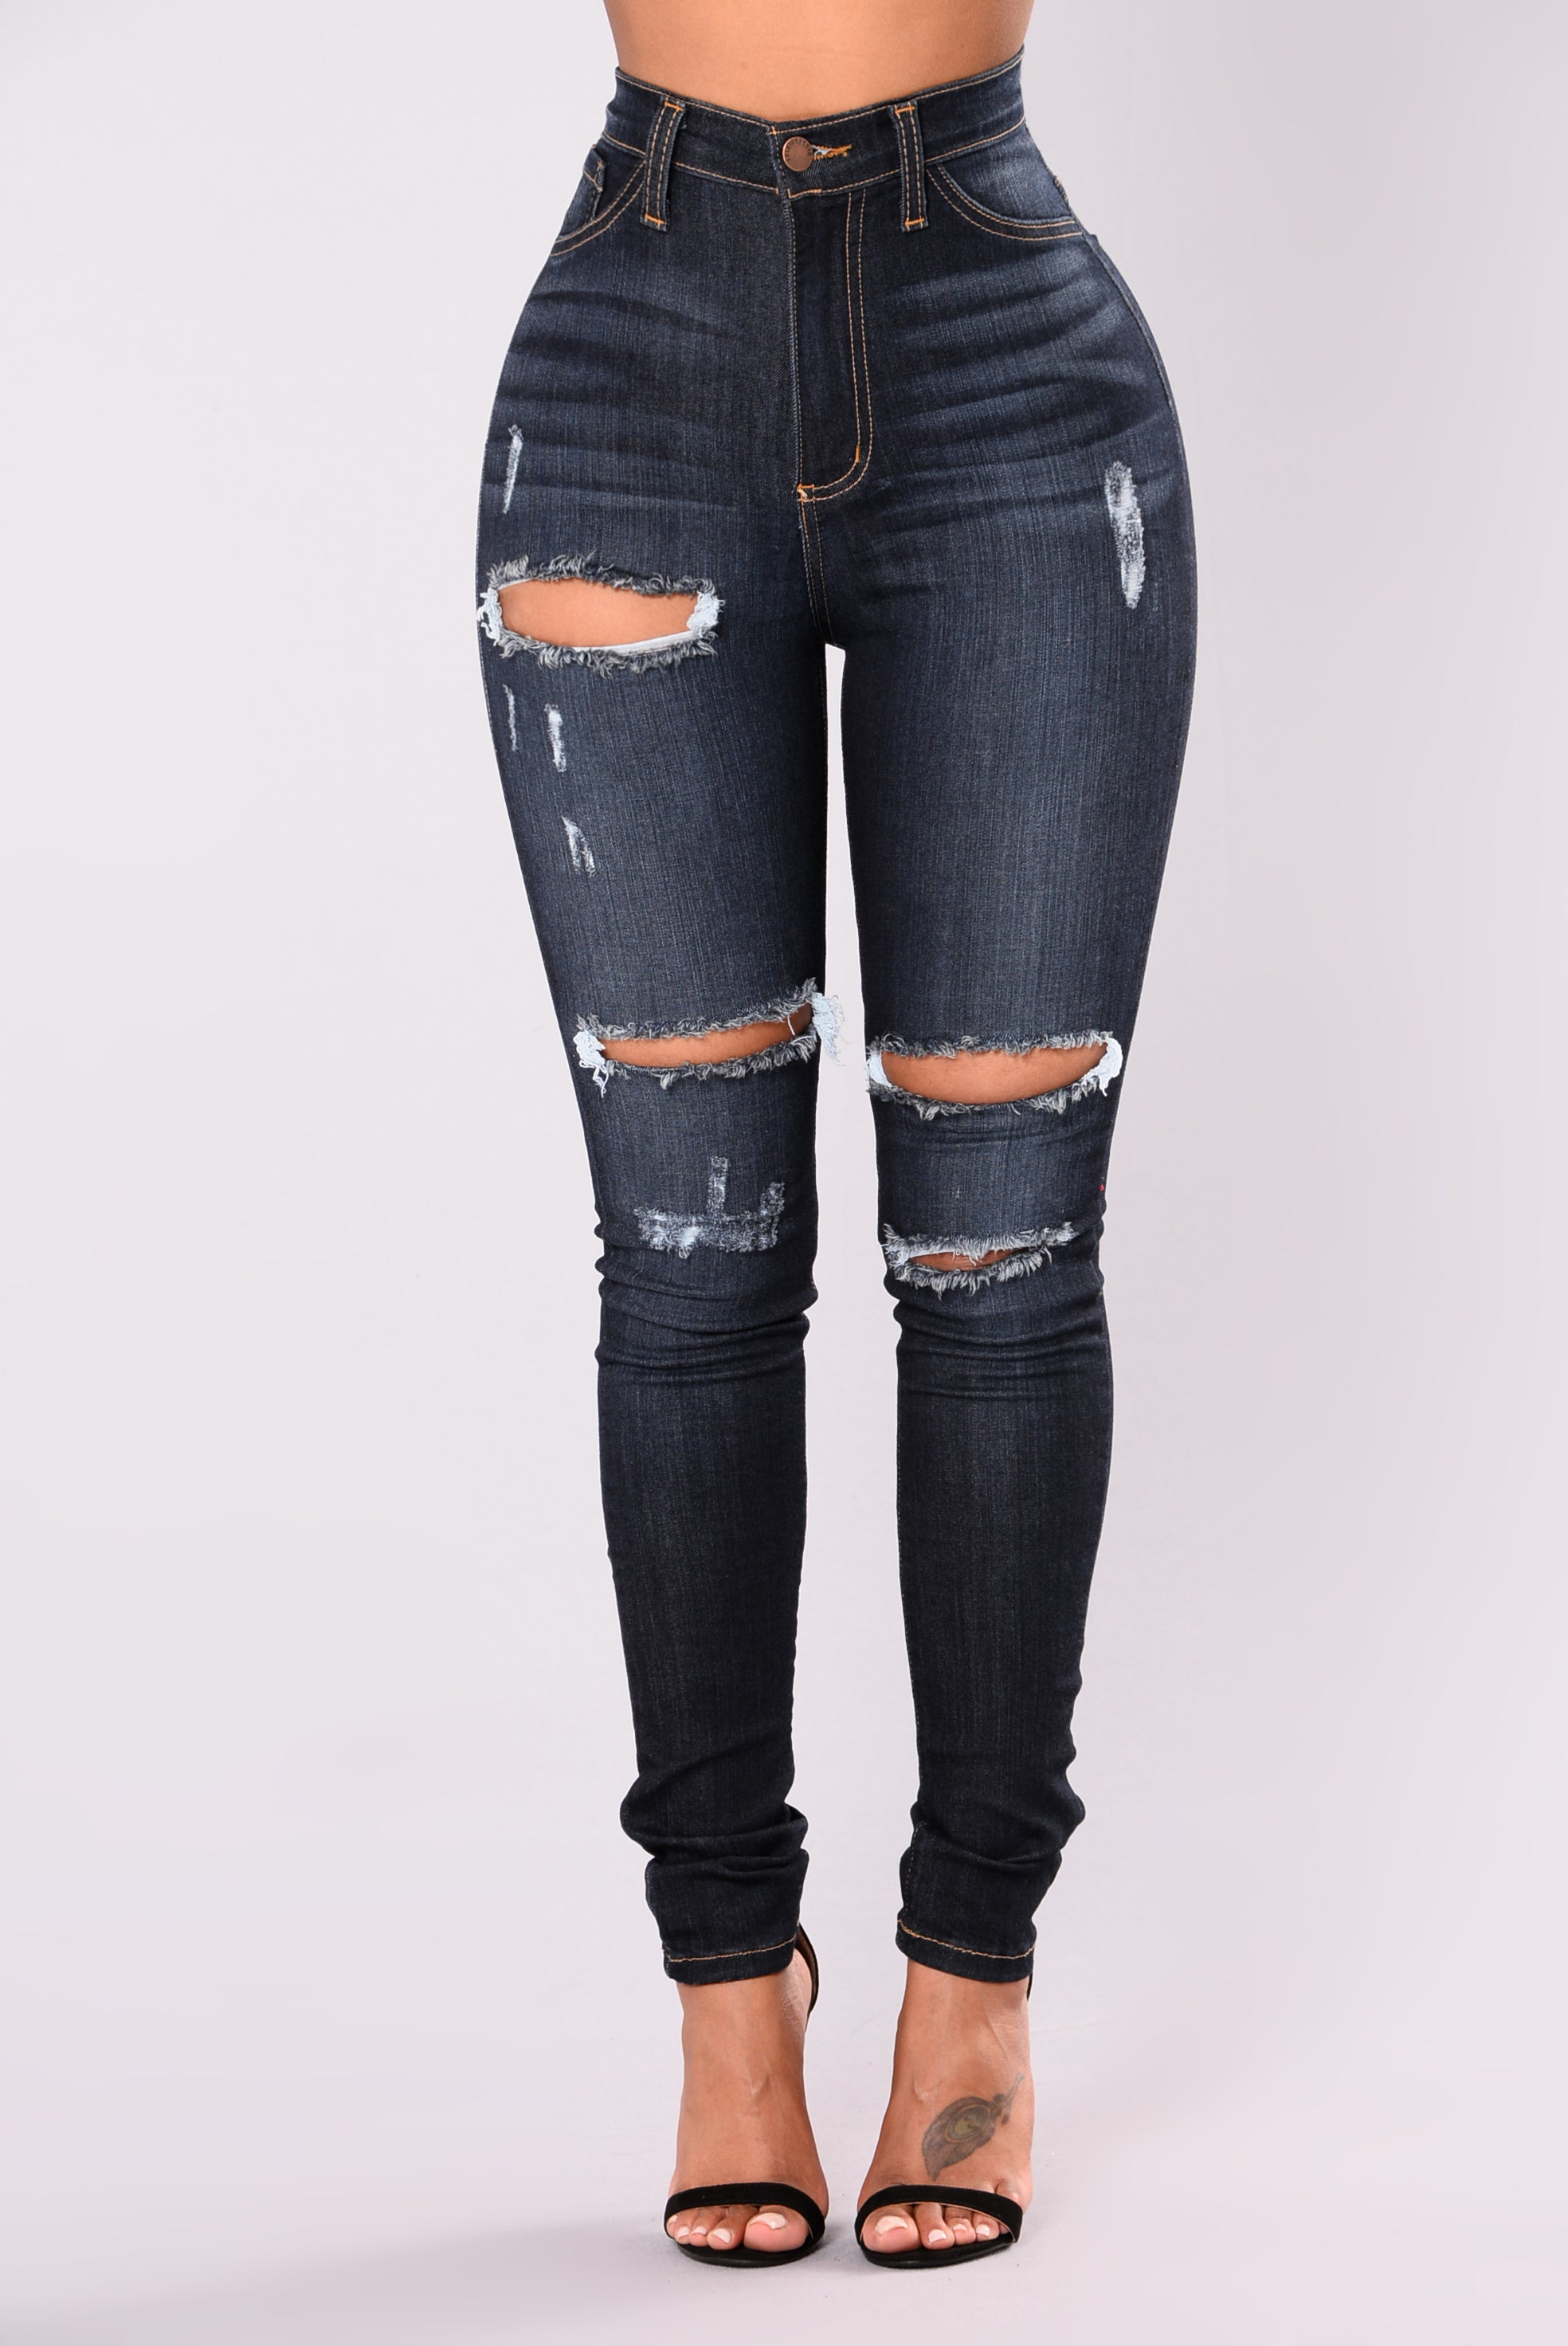 Find dark black jeans at ShopStyle. Shop the latest collection of dark black jeans from the most popular stores - all in one place.